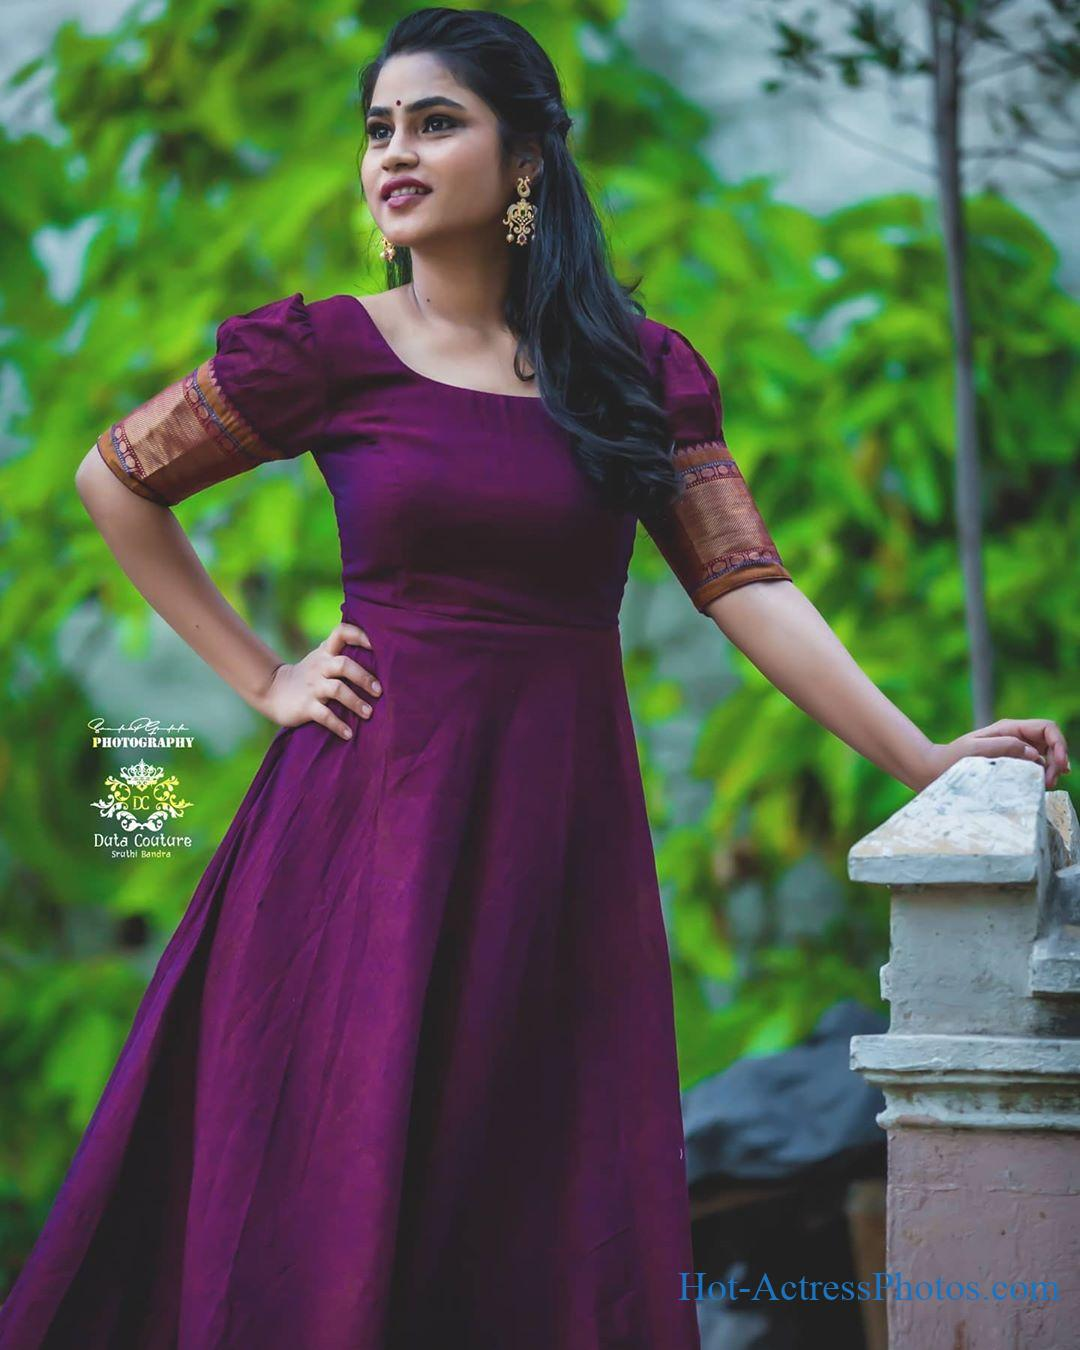 Model Sowmya Dhanavath New Cute Photoshoot Images